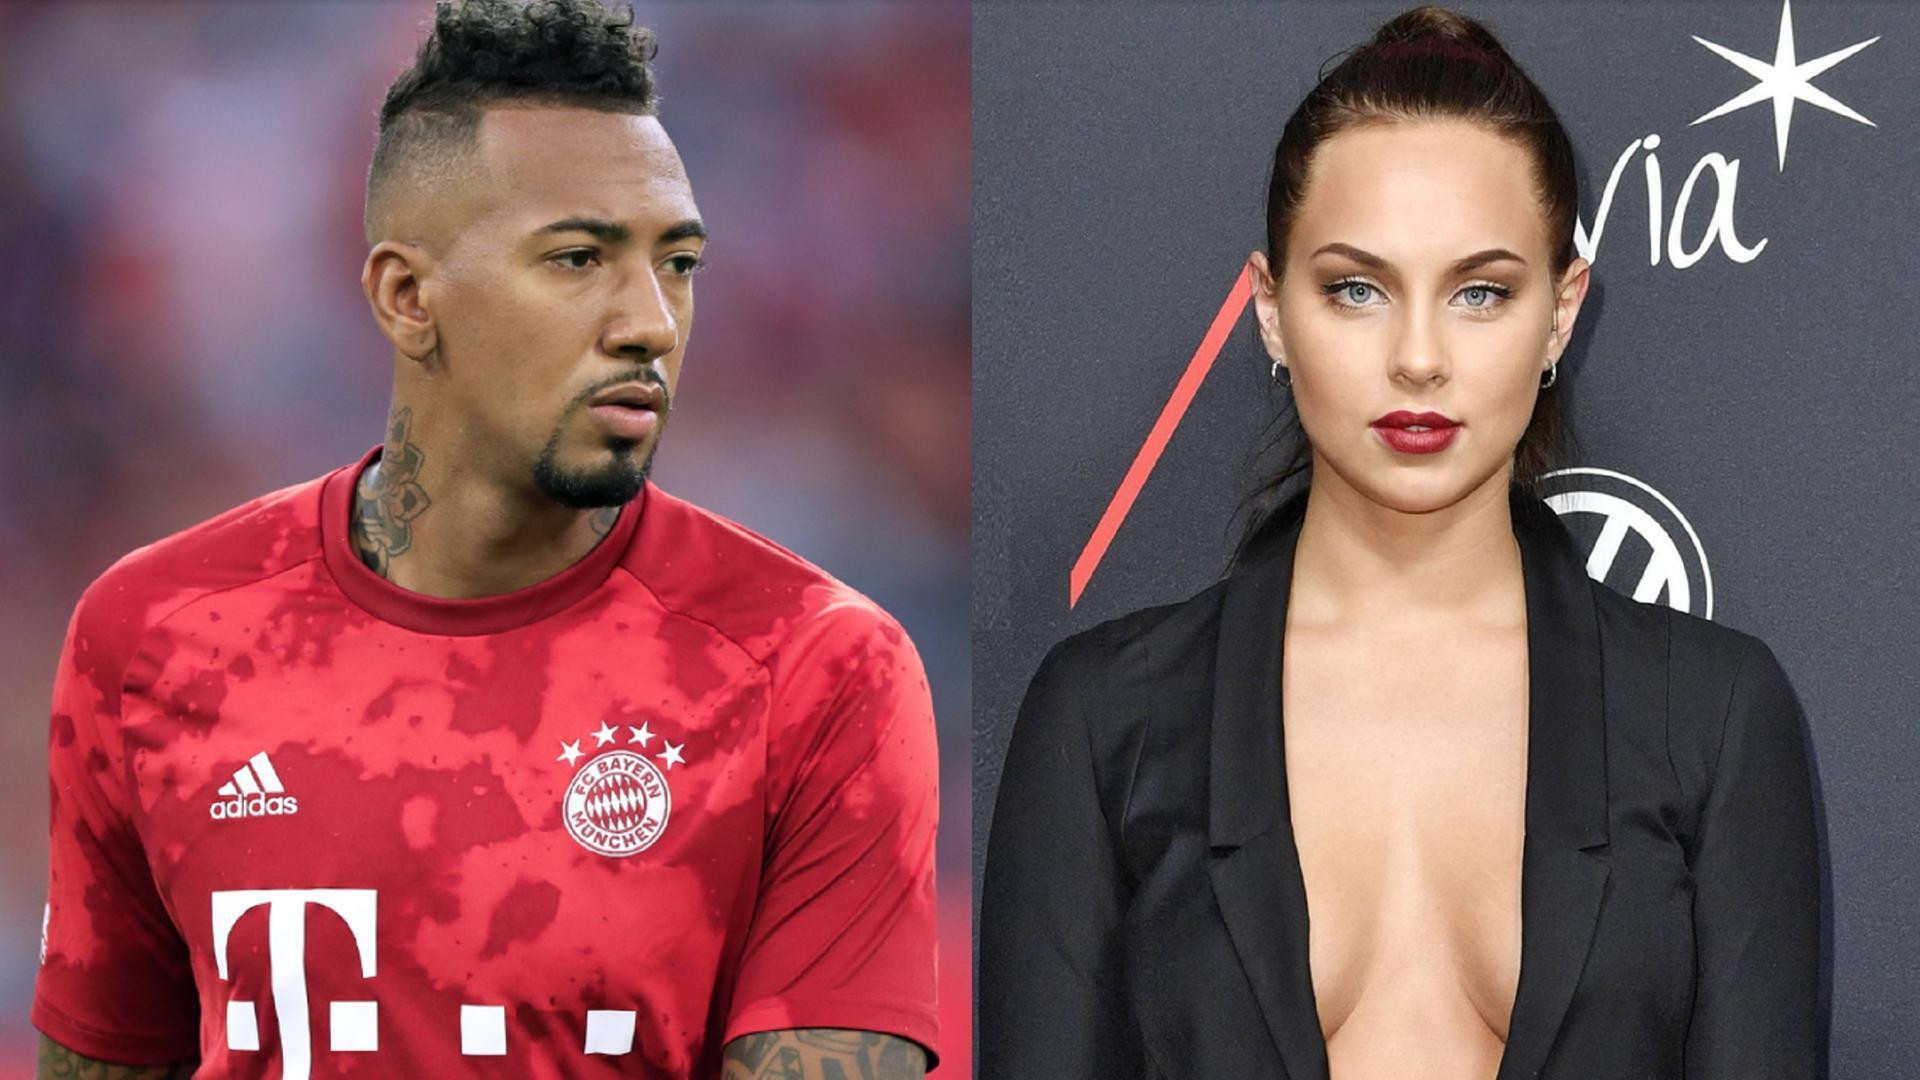 Bayern Munich star, Jerome Boateng under investigation for allegedly tearing model girlfriend Kasia Lenhardt